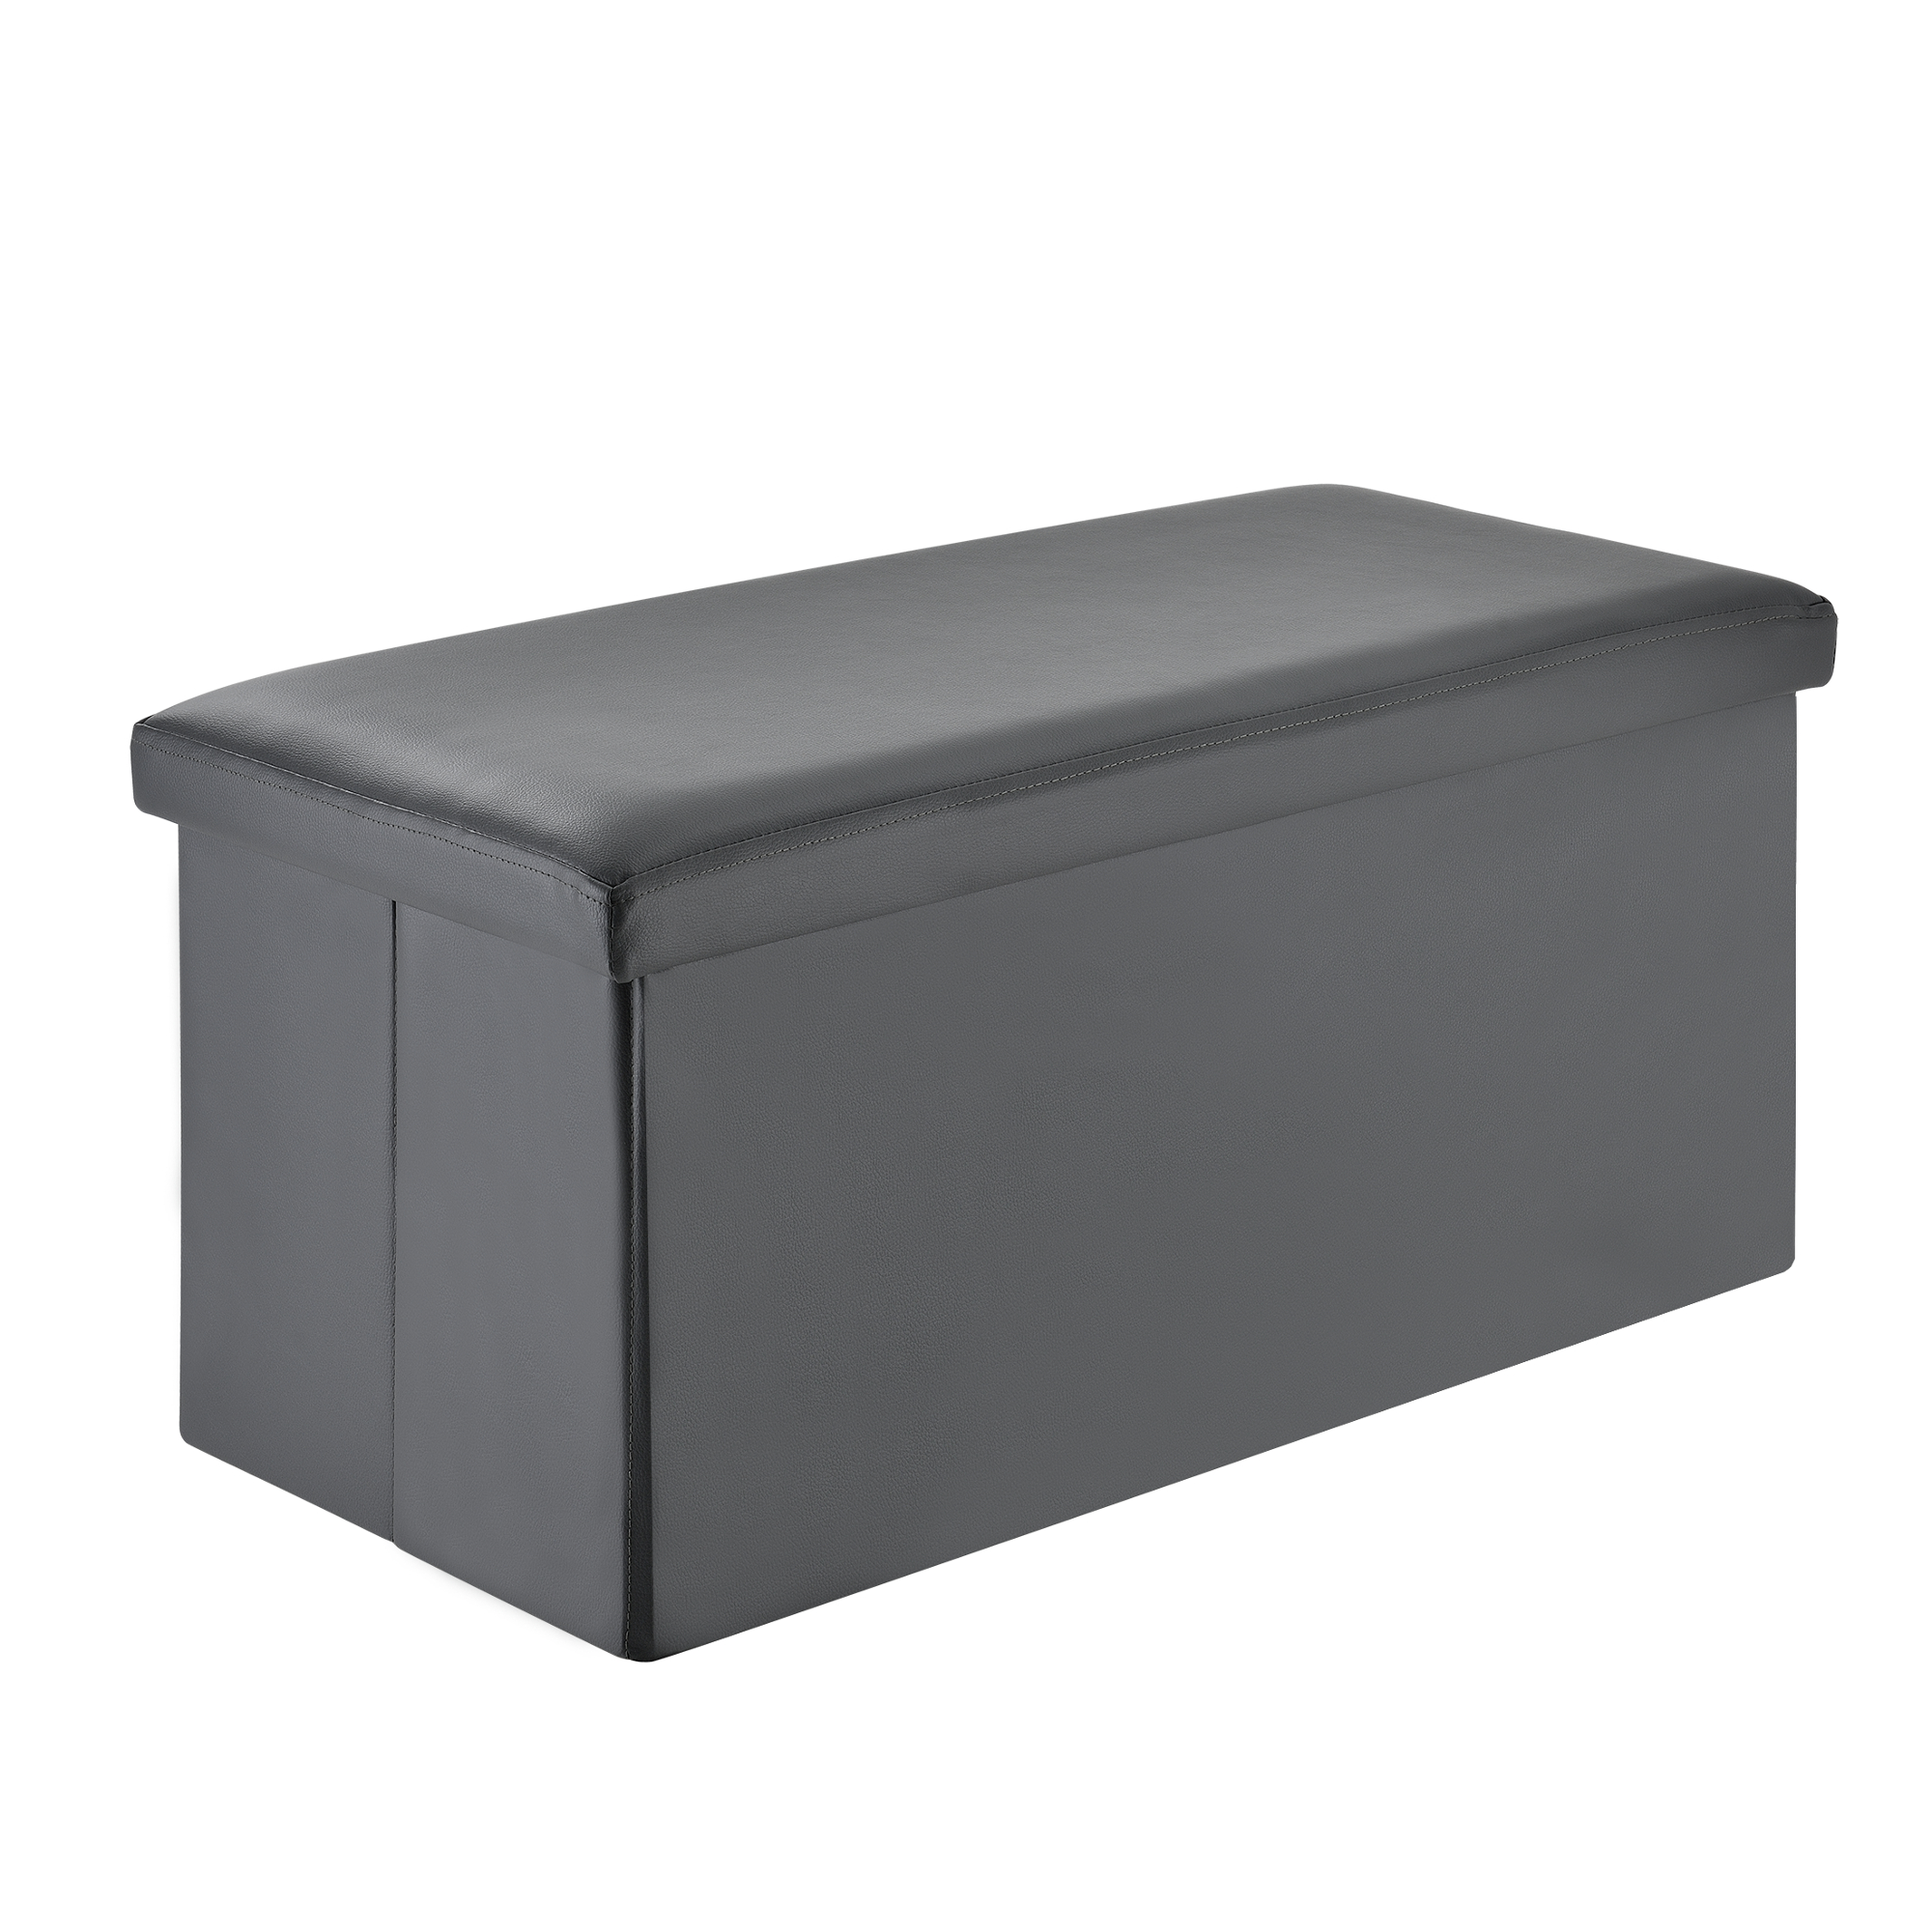 cube seat stool pouf grey 76x38x38cm storage box coffer ebay. Black Bedroom Furniture Sets. Home Design Ideas